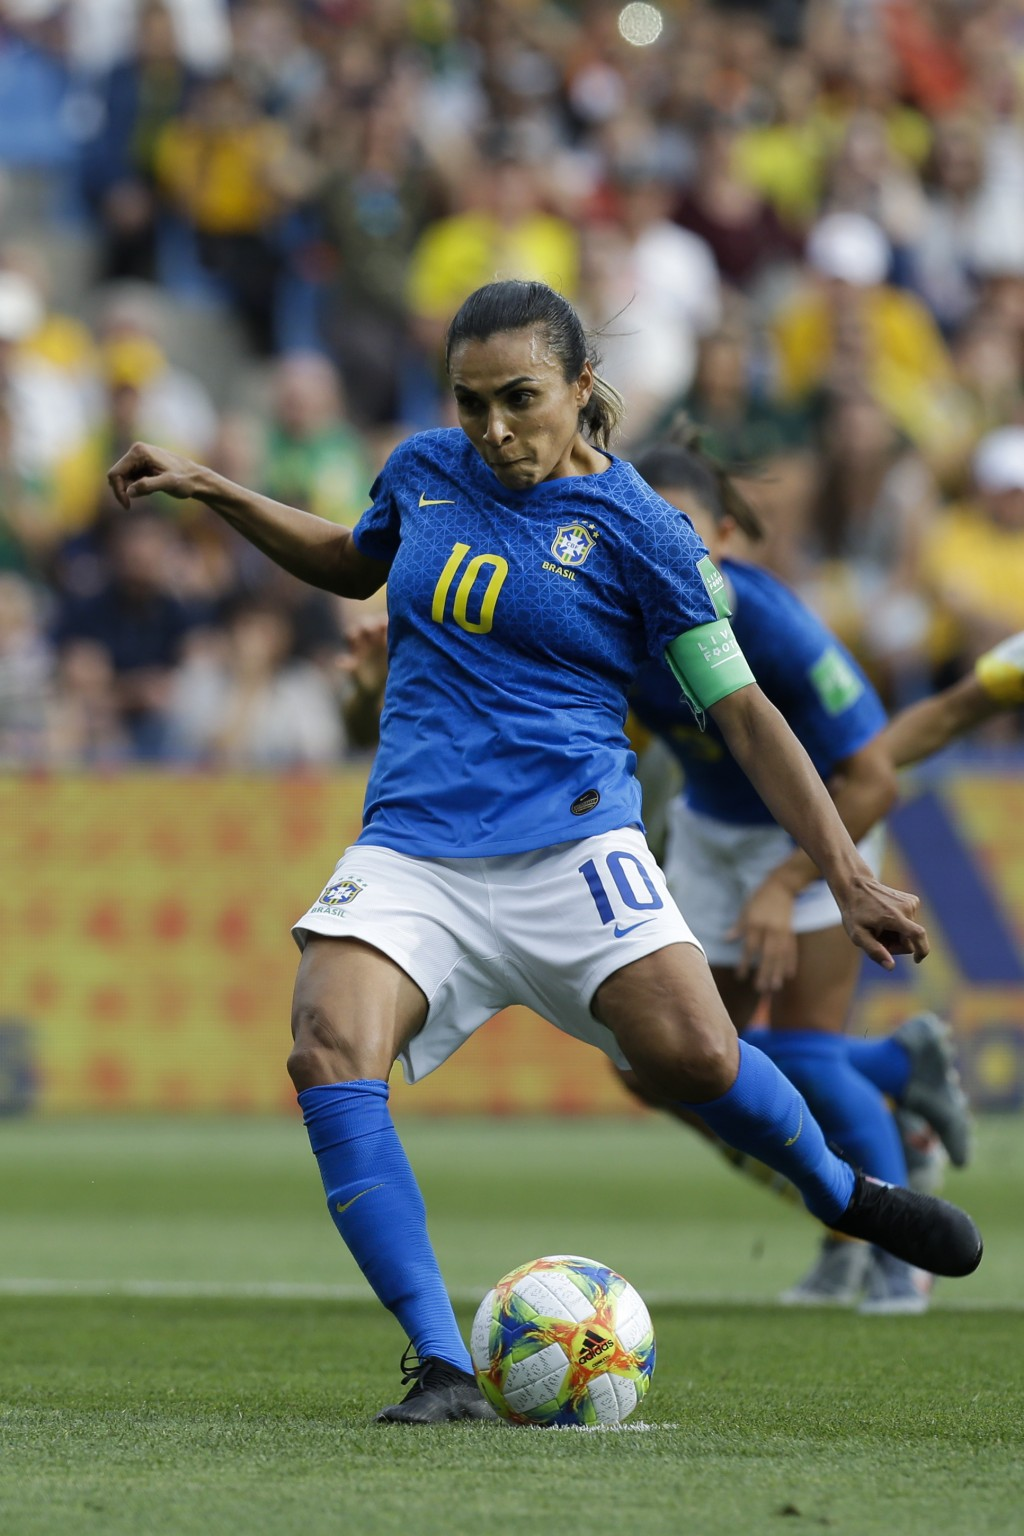 Brazil's Marta shoots a penalty kick to score the opening goal during the Women's World Cup Group C soccer match between Australia and Brazil at Stade